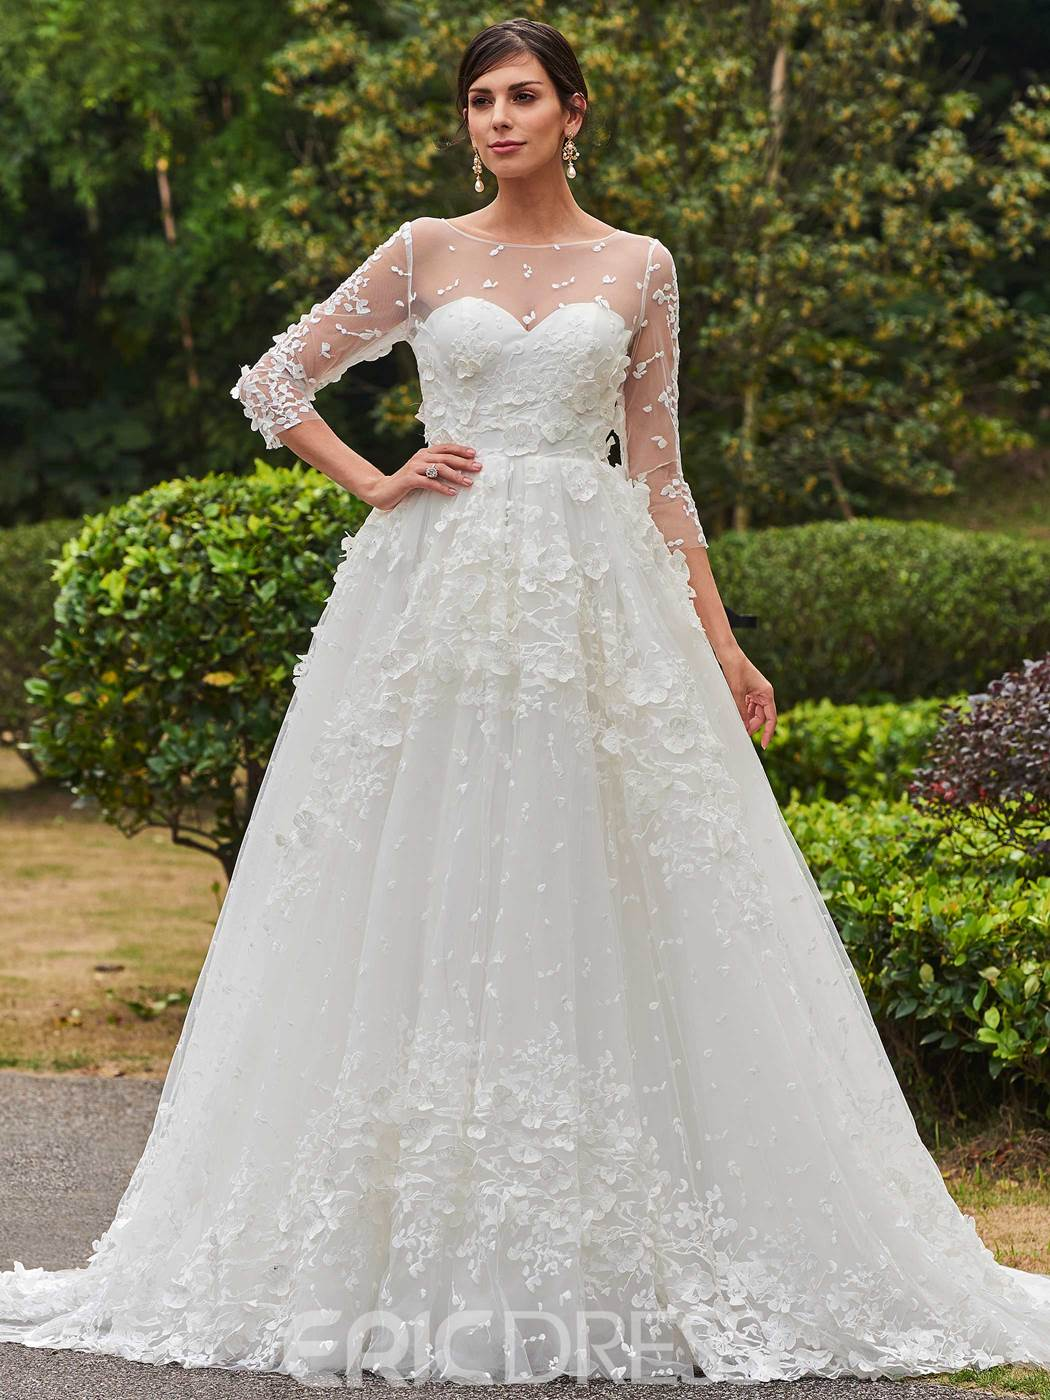 Ericdress Charming Bateau A Line Lace Wedding Dress With Sleeves